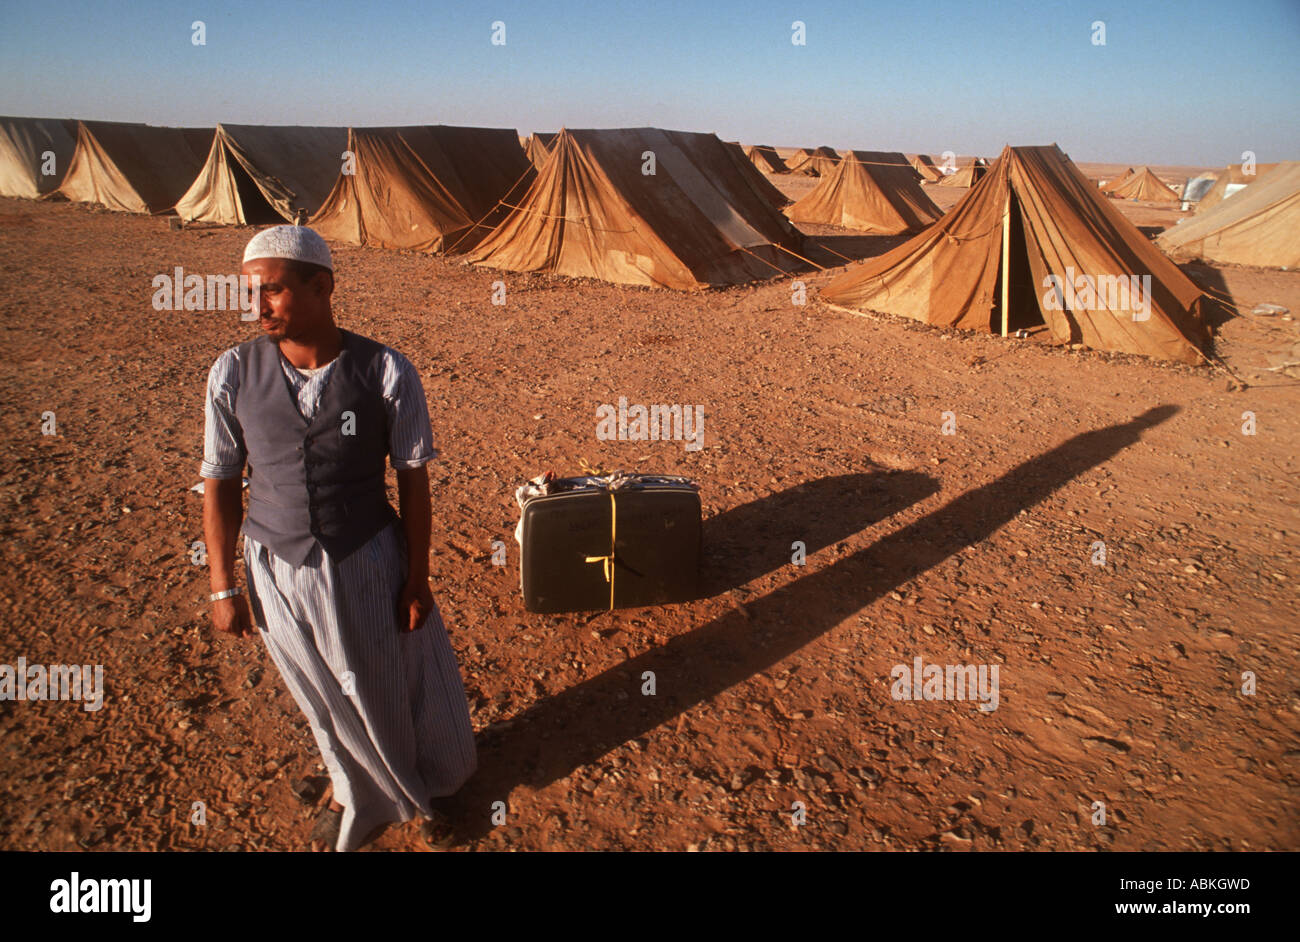 A refugee from the Iraqi War arrives at a tented camp in Jordan. - Stock Image